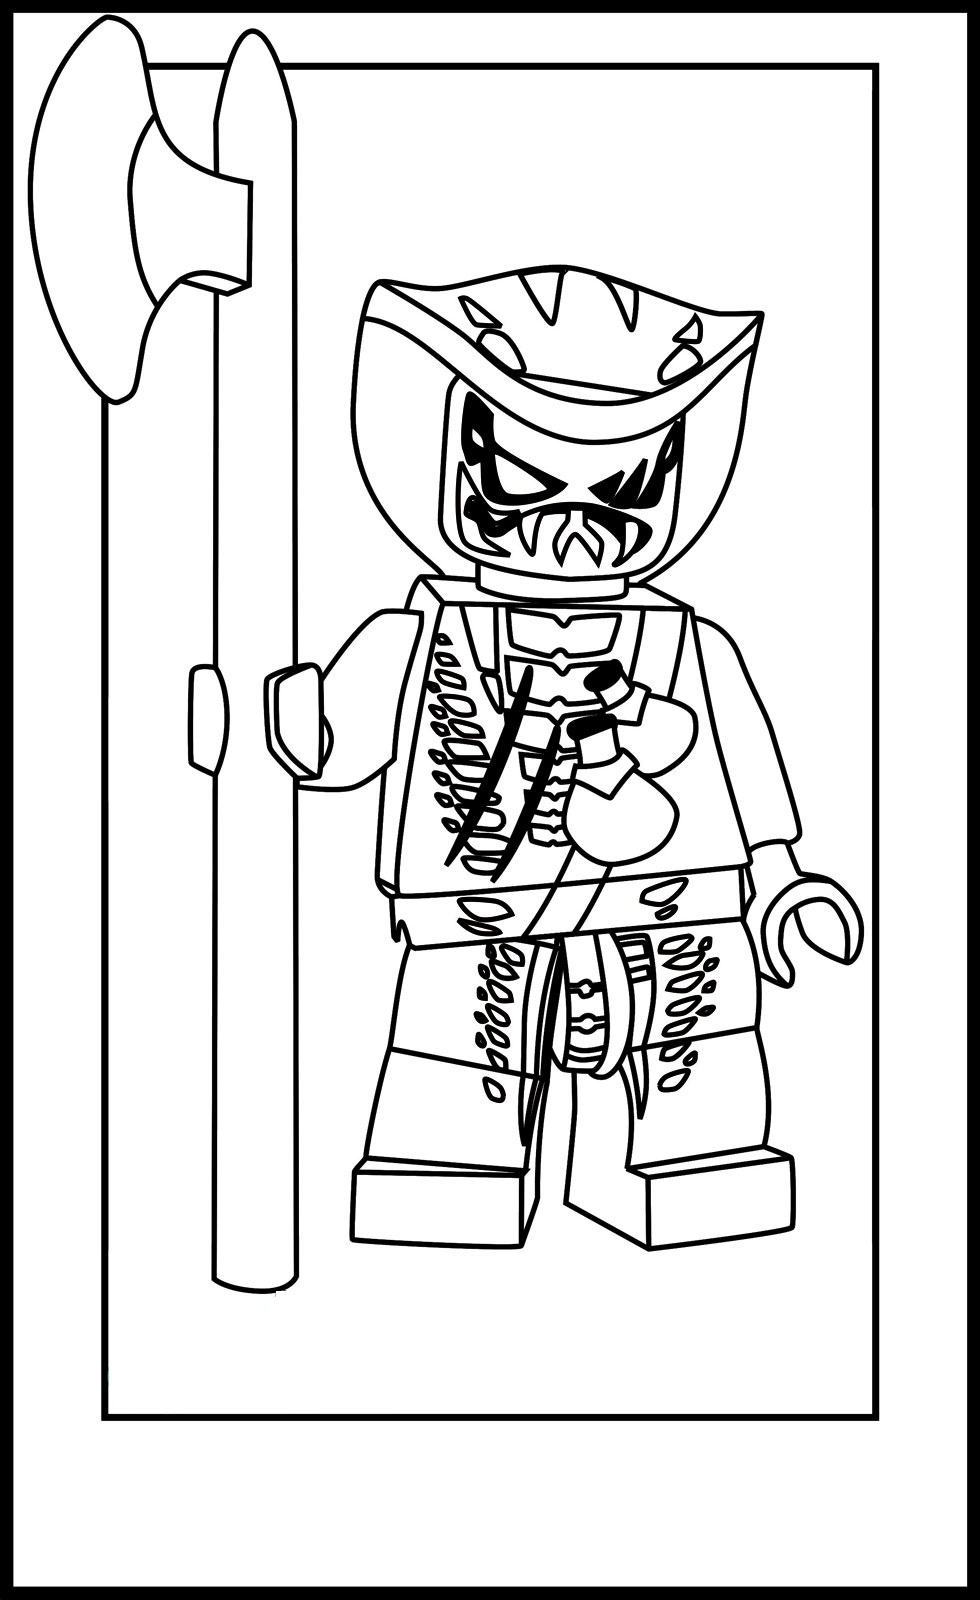 lego ninjago 2014 coloring pages - photo#15